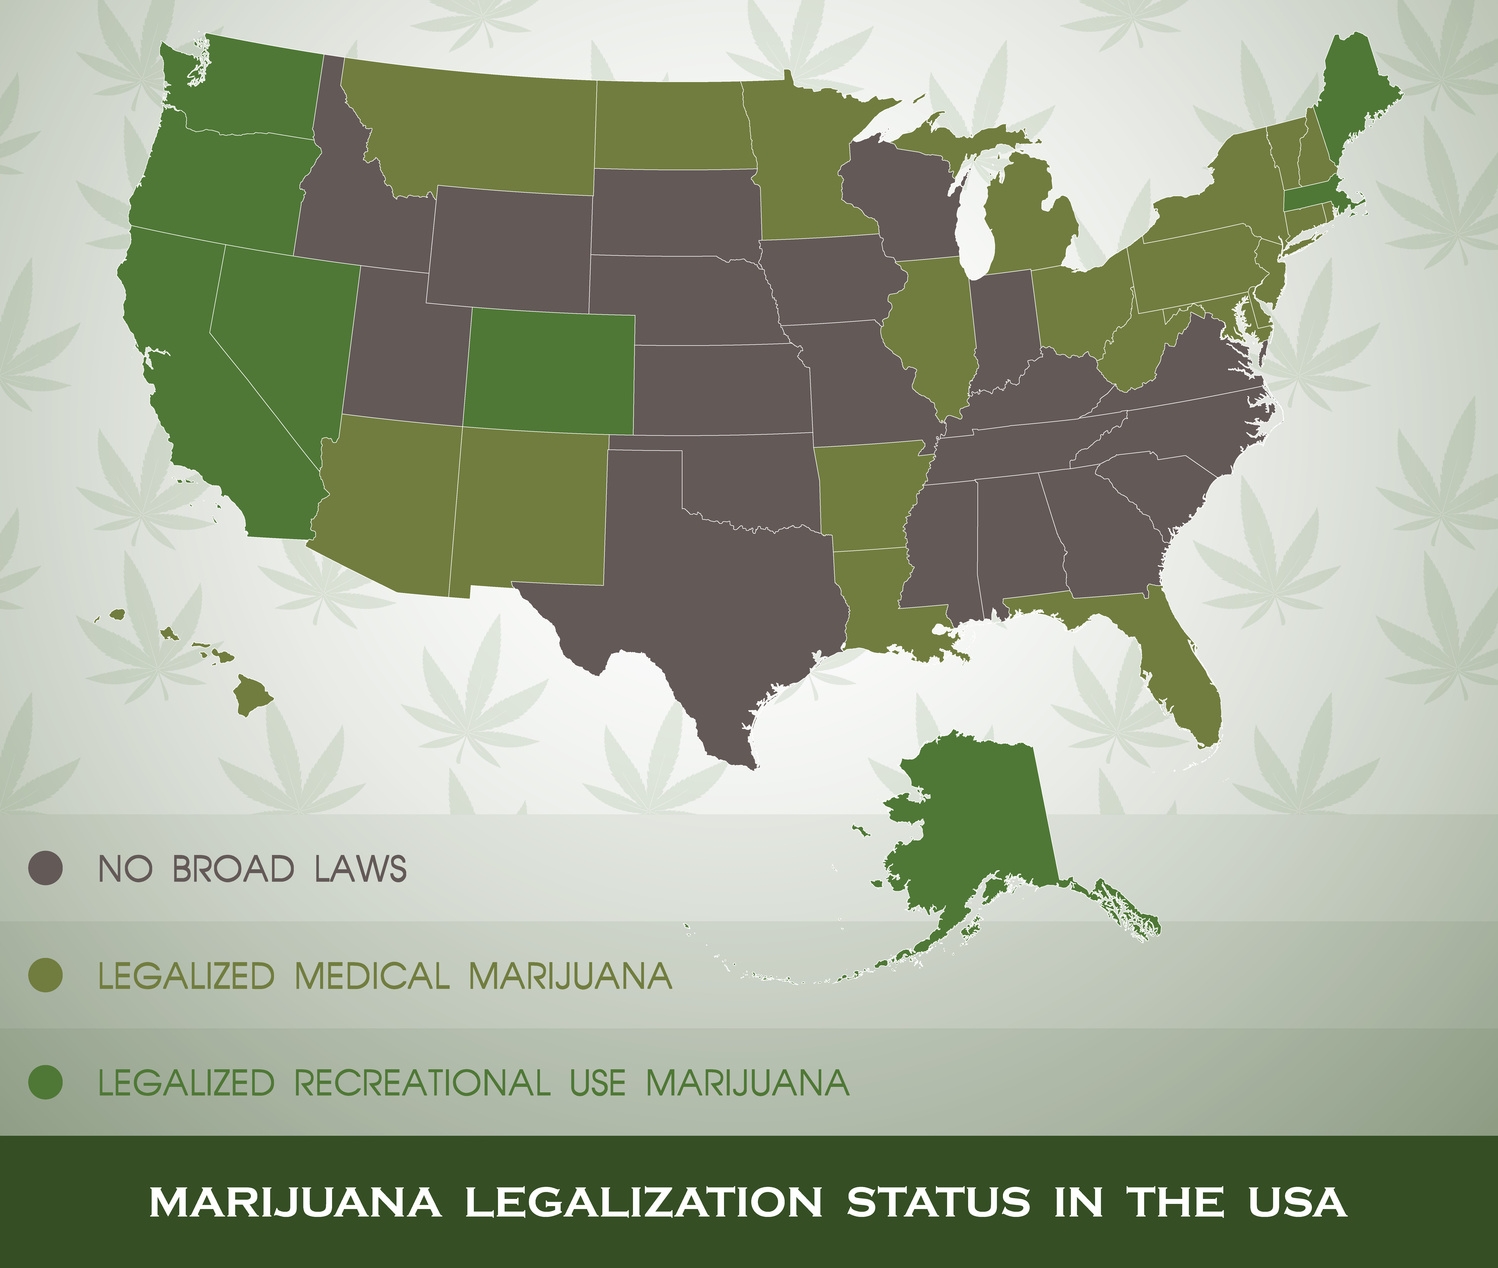 States Where CBD Oil Is Allowed